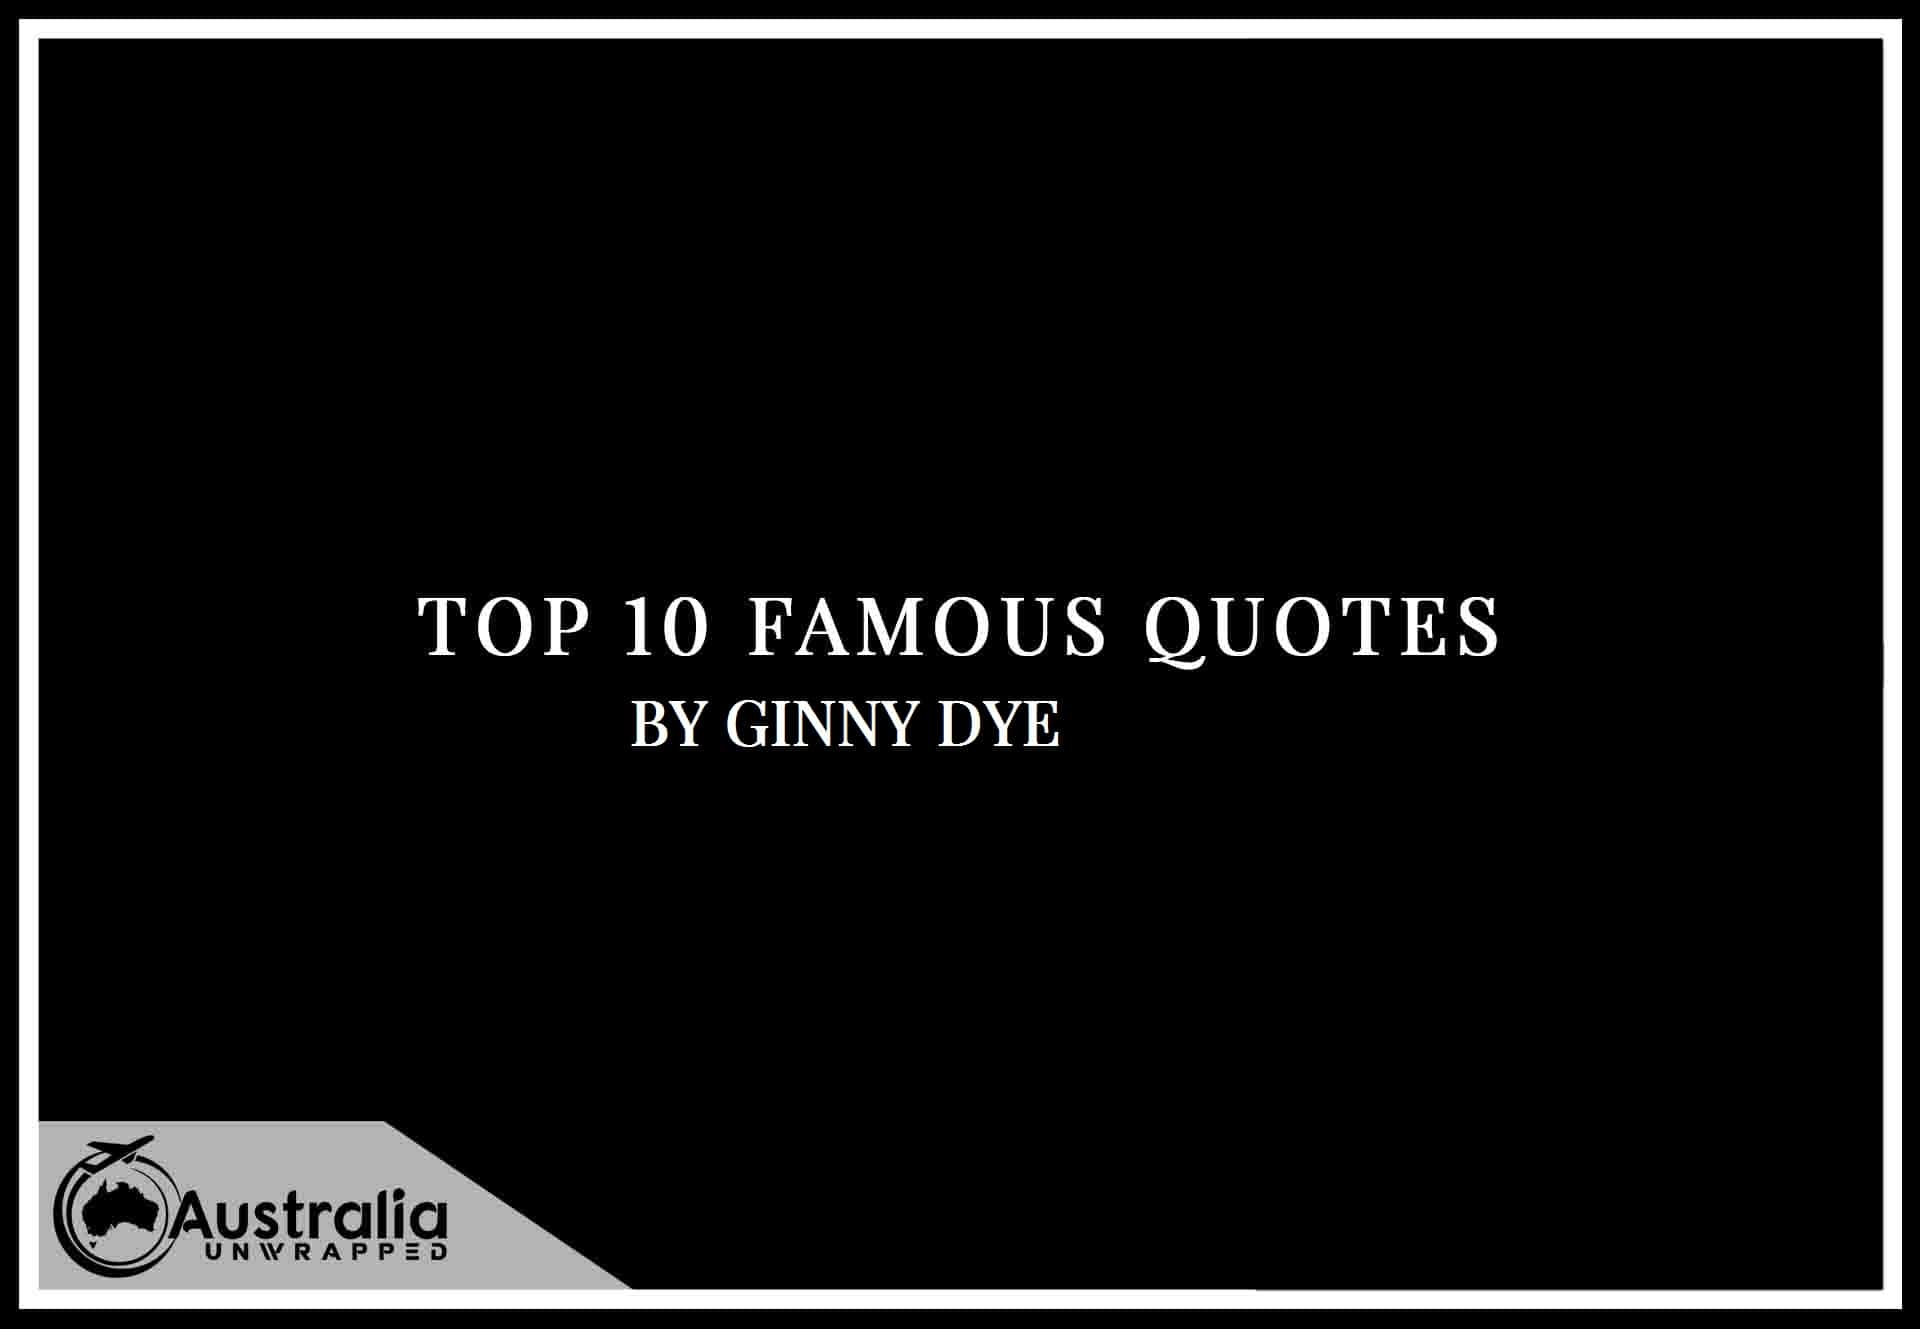 Ginny Dye's Top 10 Popular and Famous Quotes